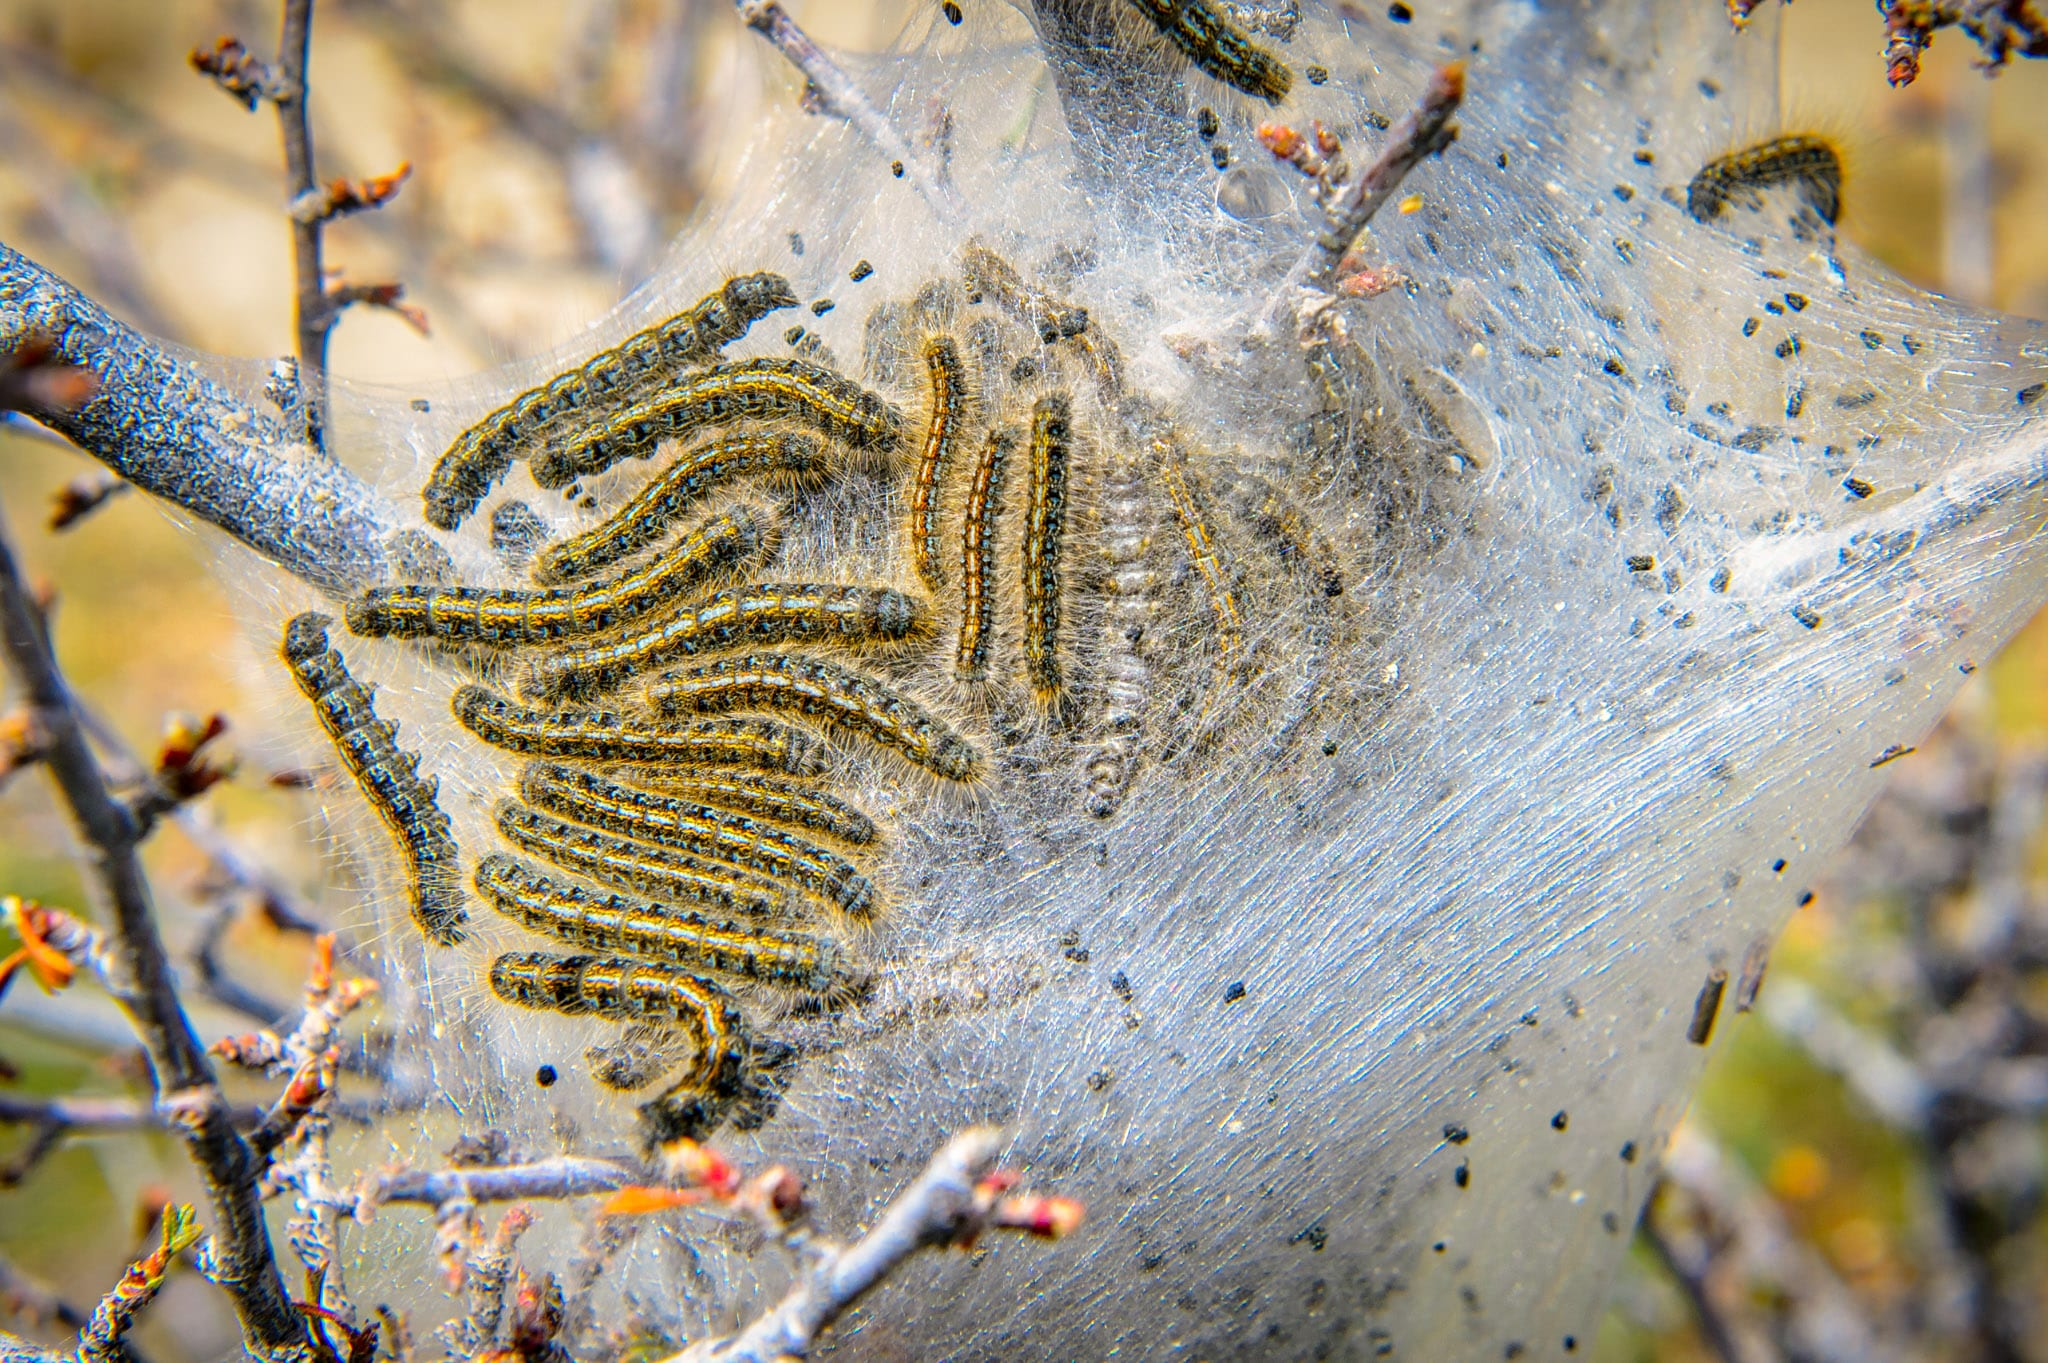 Tent caterpillars, although destructive, are rather pretty with their blue and yellow stripes and brushy bristles. From the City of Rocks National Reserve portfolio.